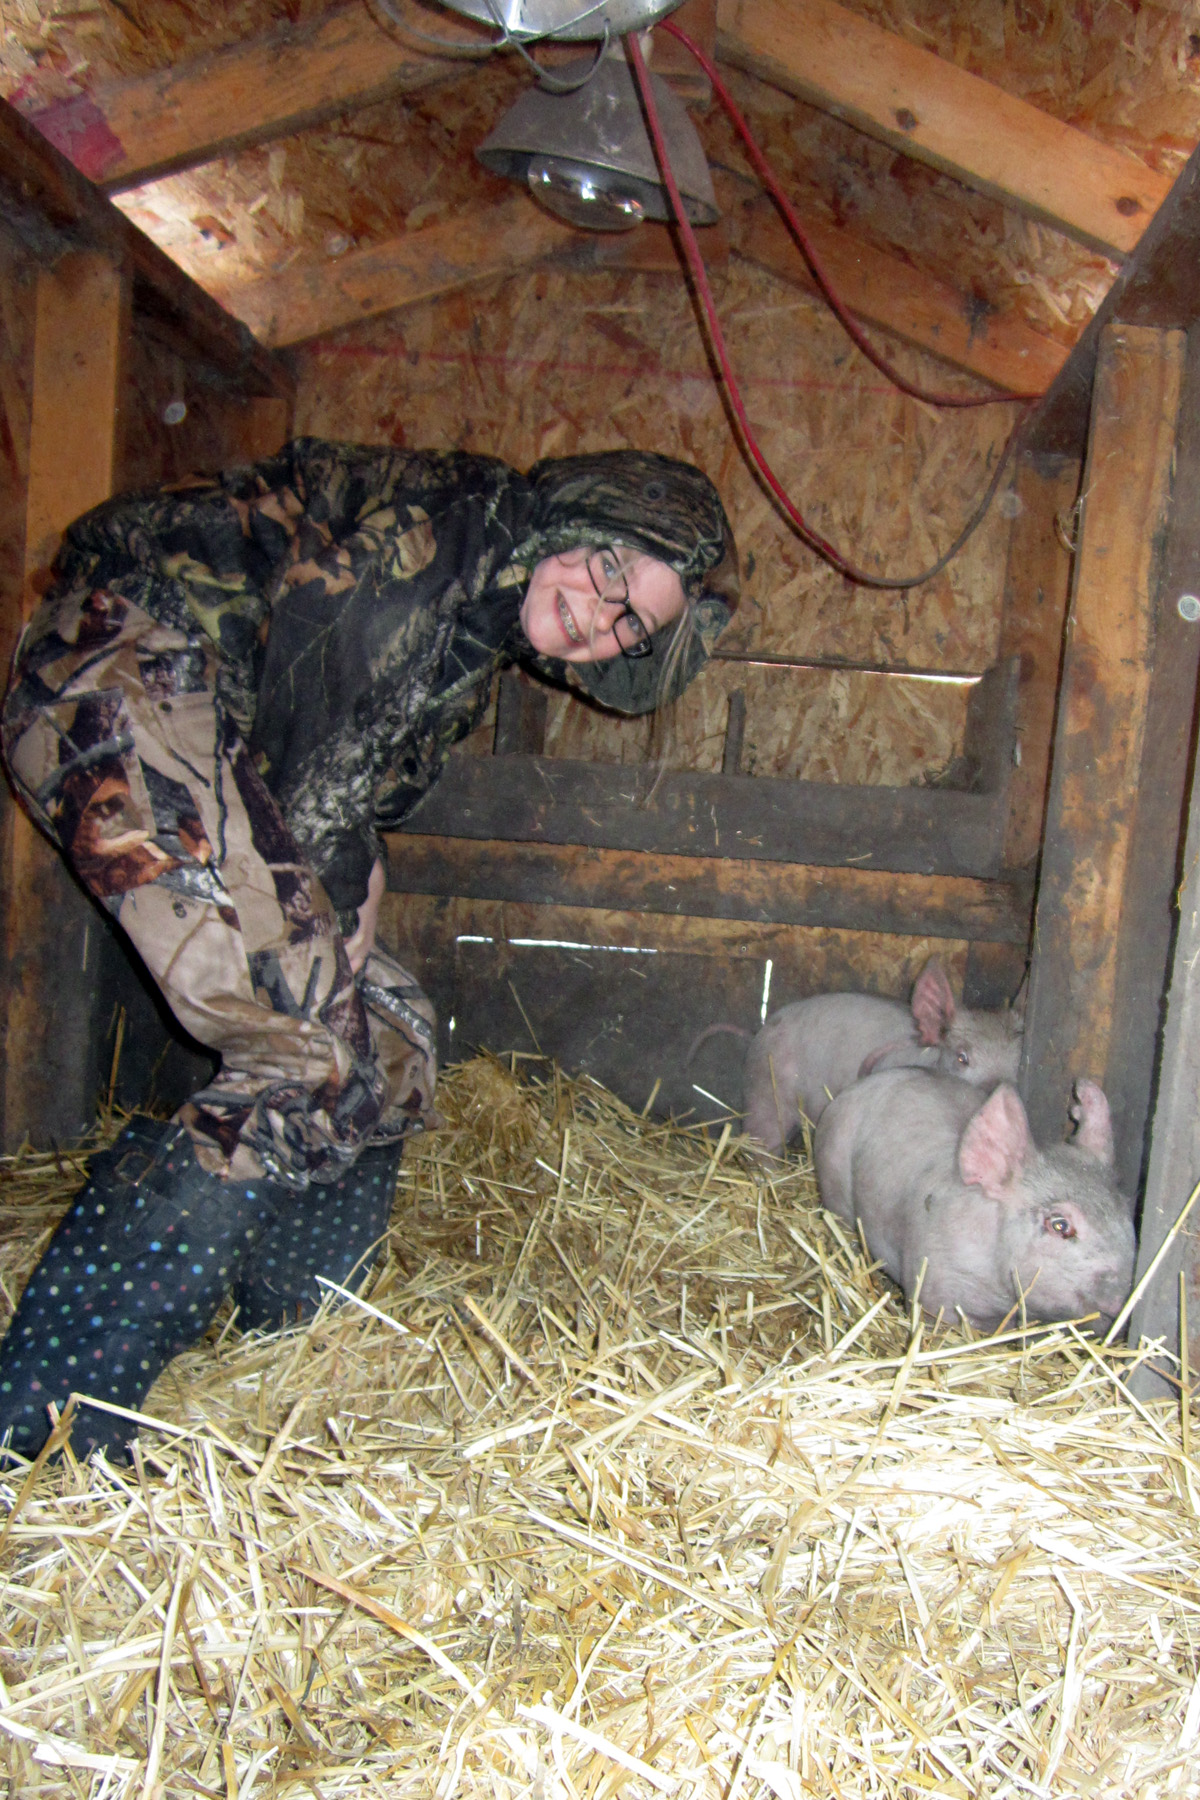 Reagan and Her Pig